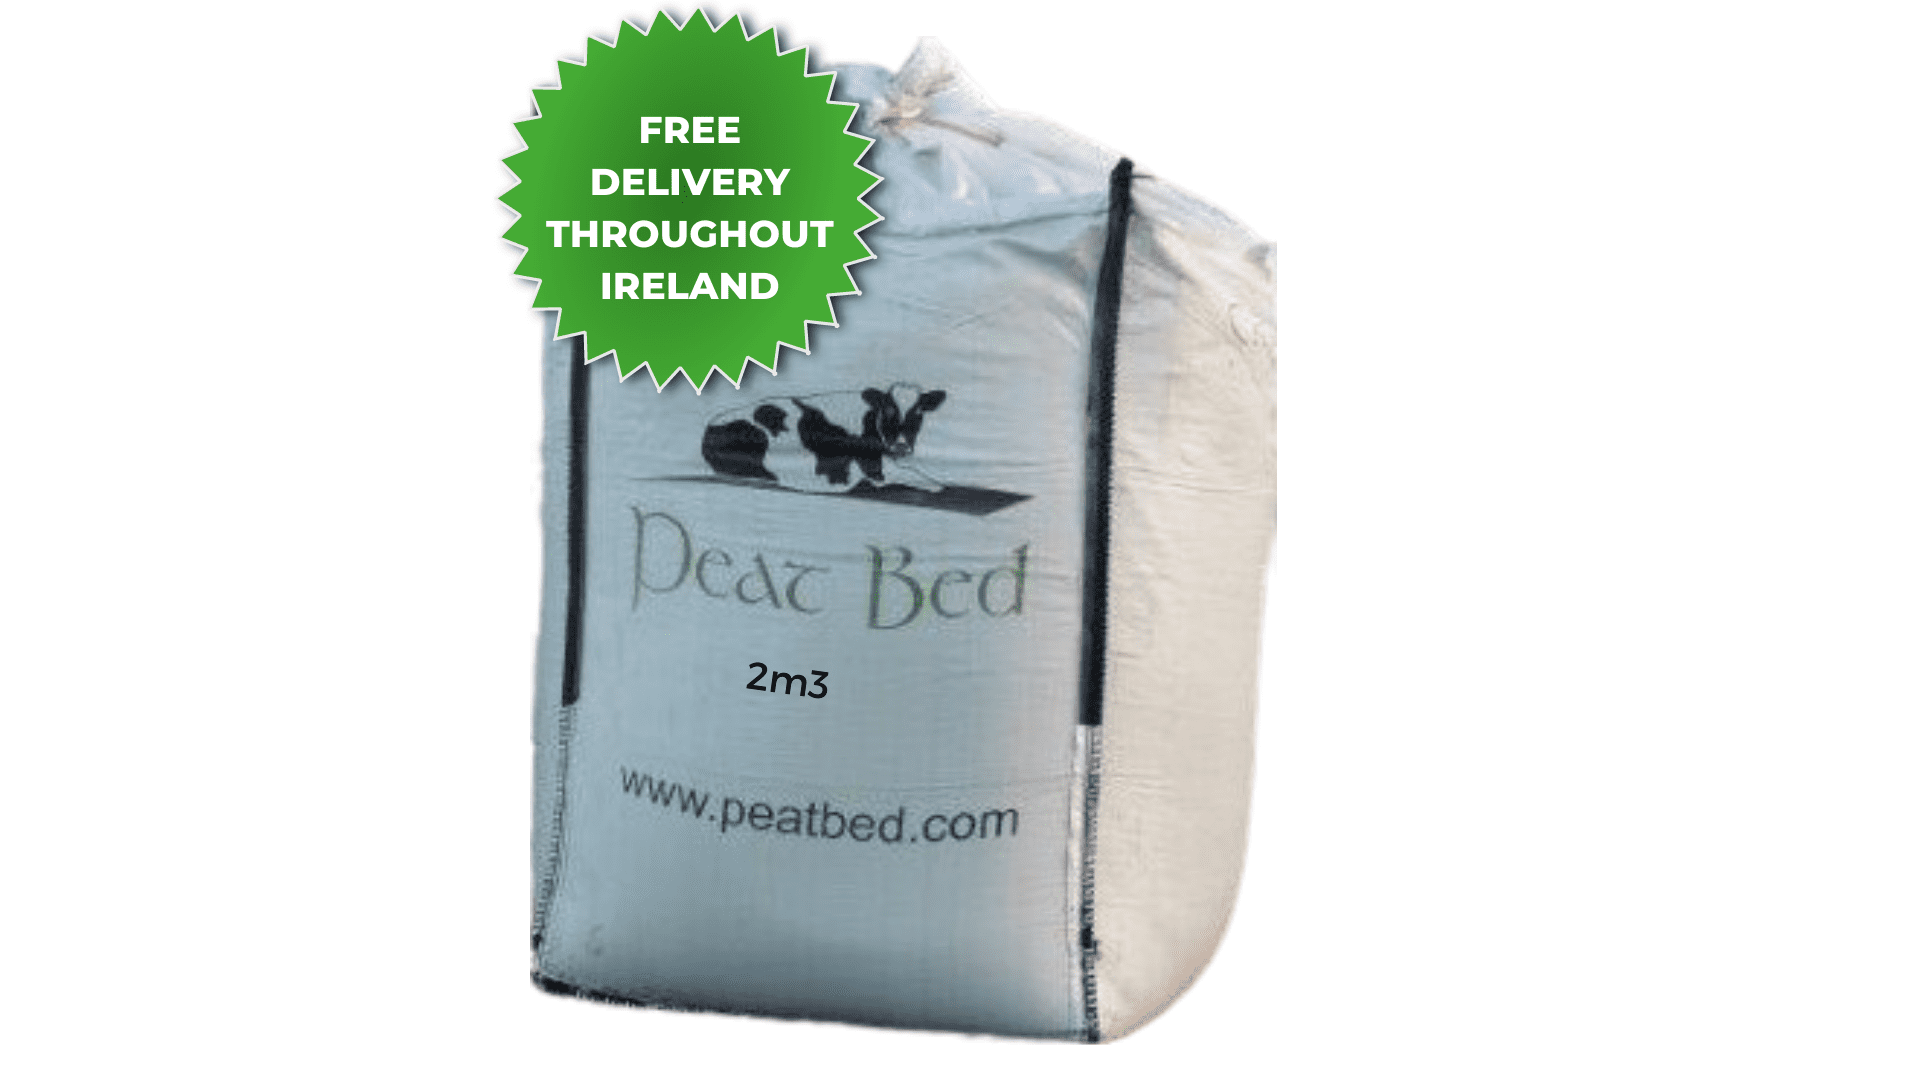 Peat Bed WSC Bed 2m3 Bag- FREE DELIVERY